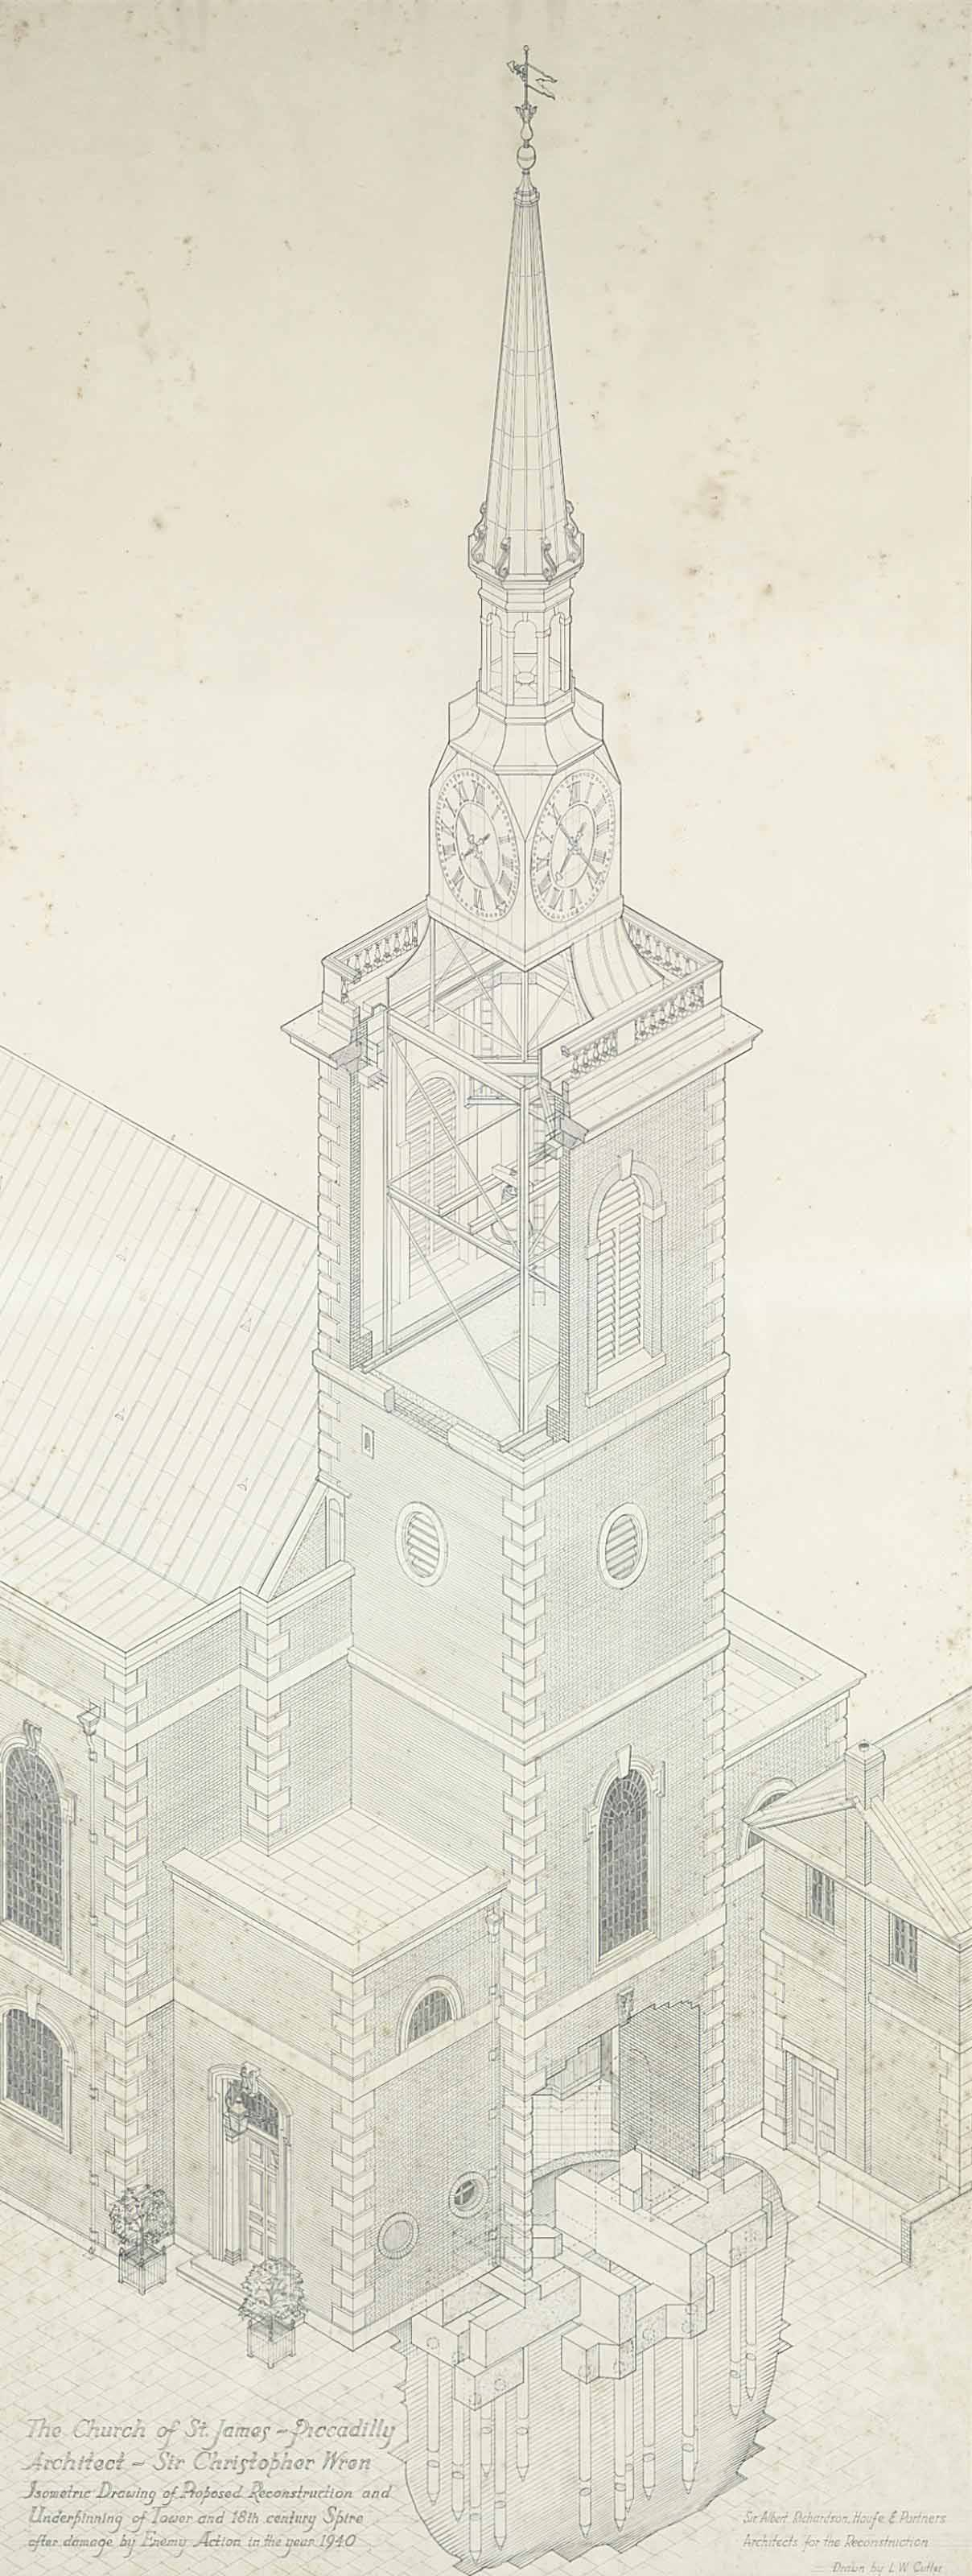 Design for the Restoration of the Church of St. James's Piccadilly after war damage in 1940